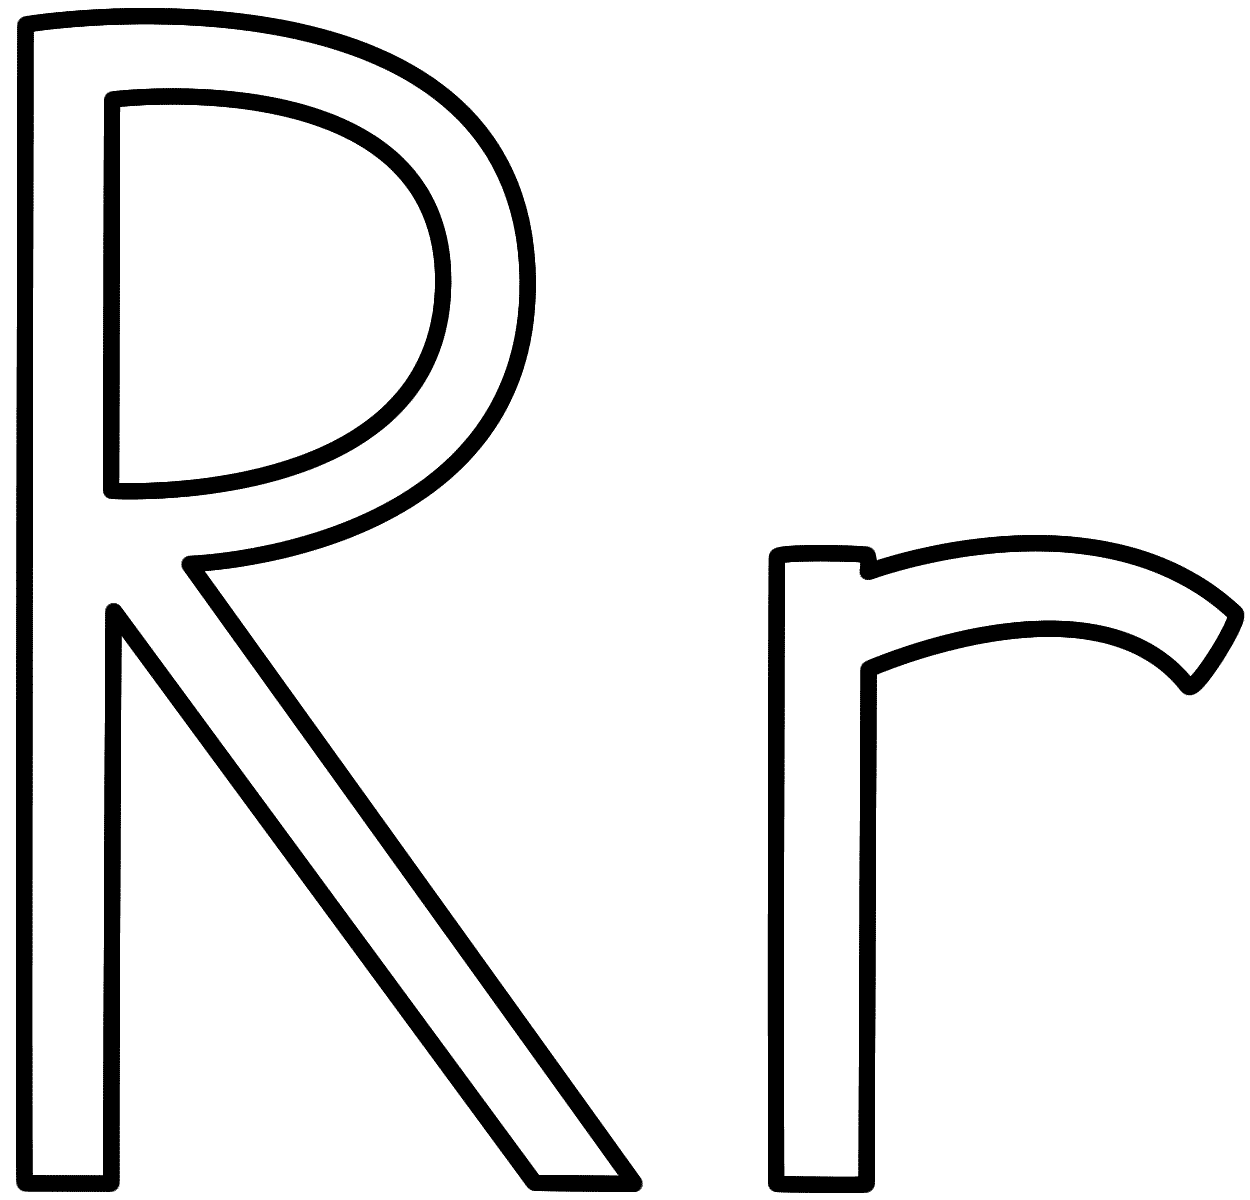 letter r coloring pages letter r coloring pages to download and print for free r letter pages coloring